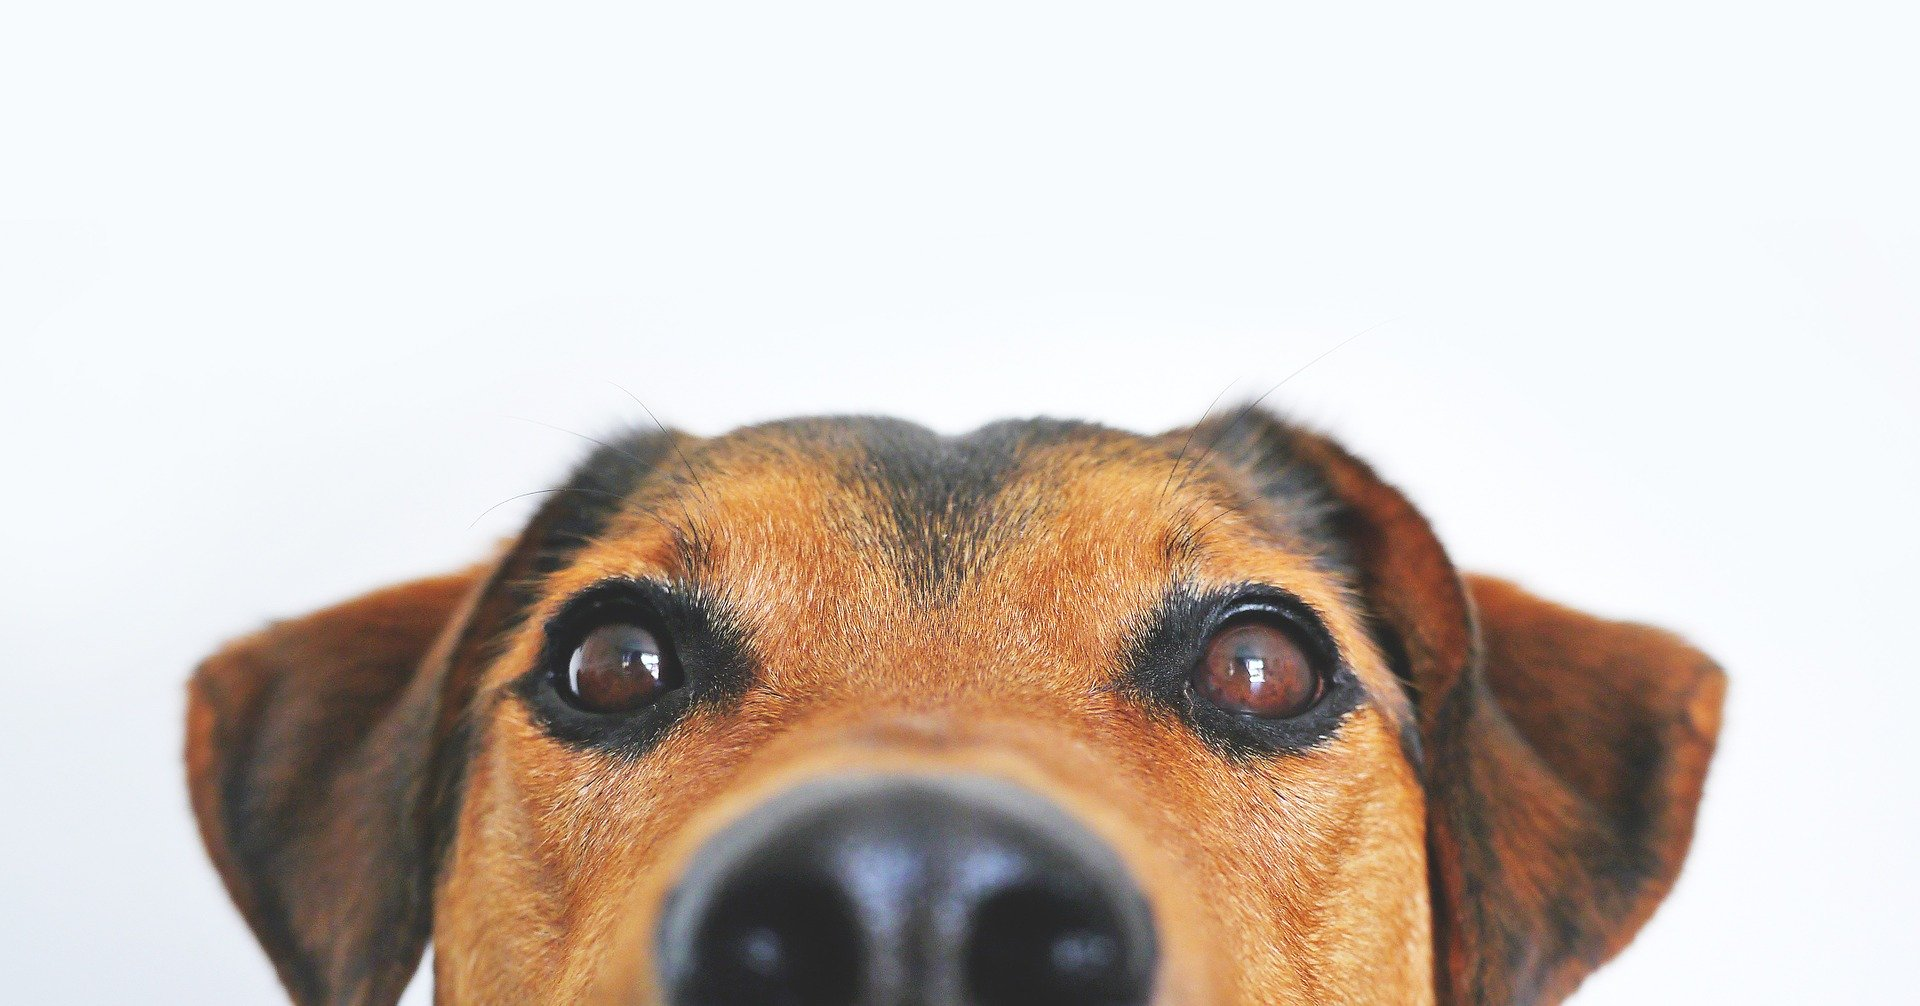 A brown dog is peaking its head up - only the top of the nose, eyes and ears are visible